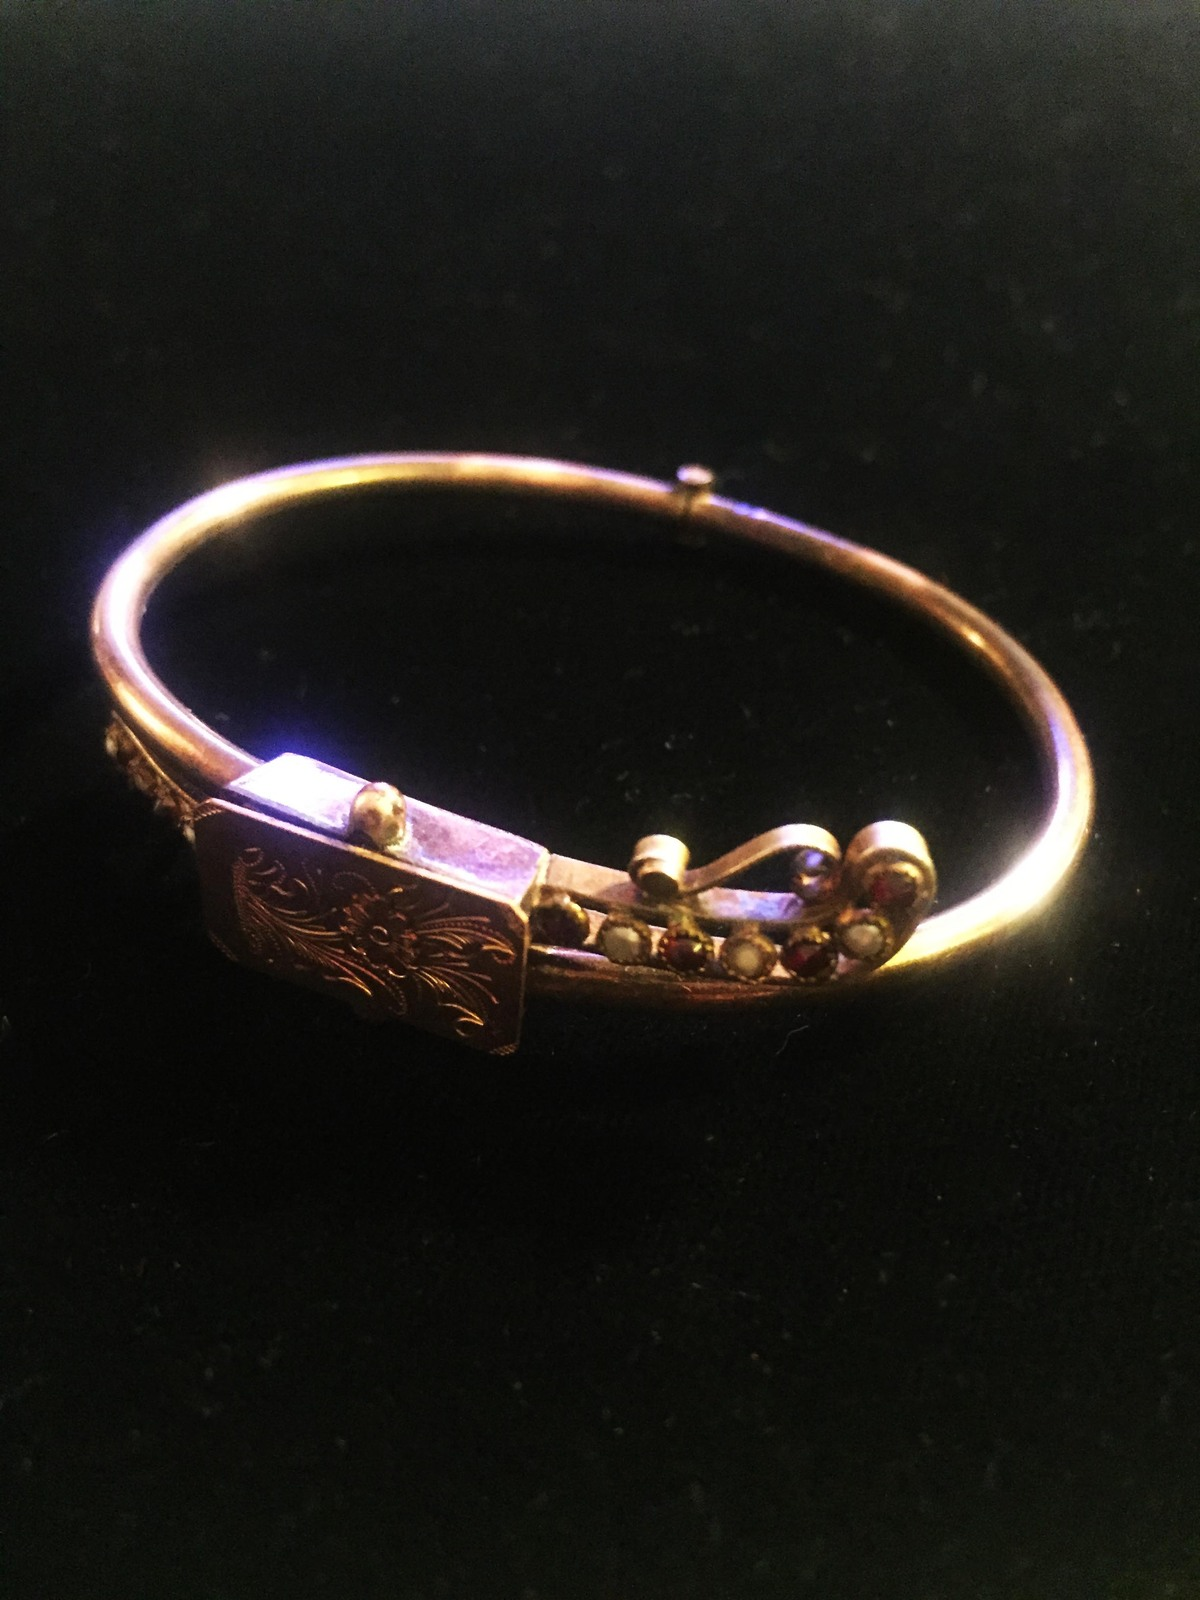 Antique Victorian Suffragette hinged bangle bracelet with seed pearl and garnet